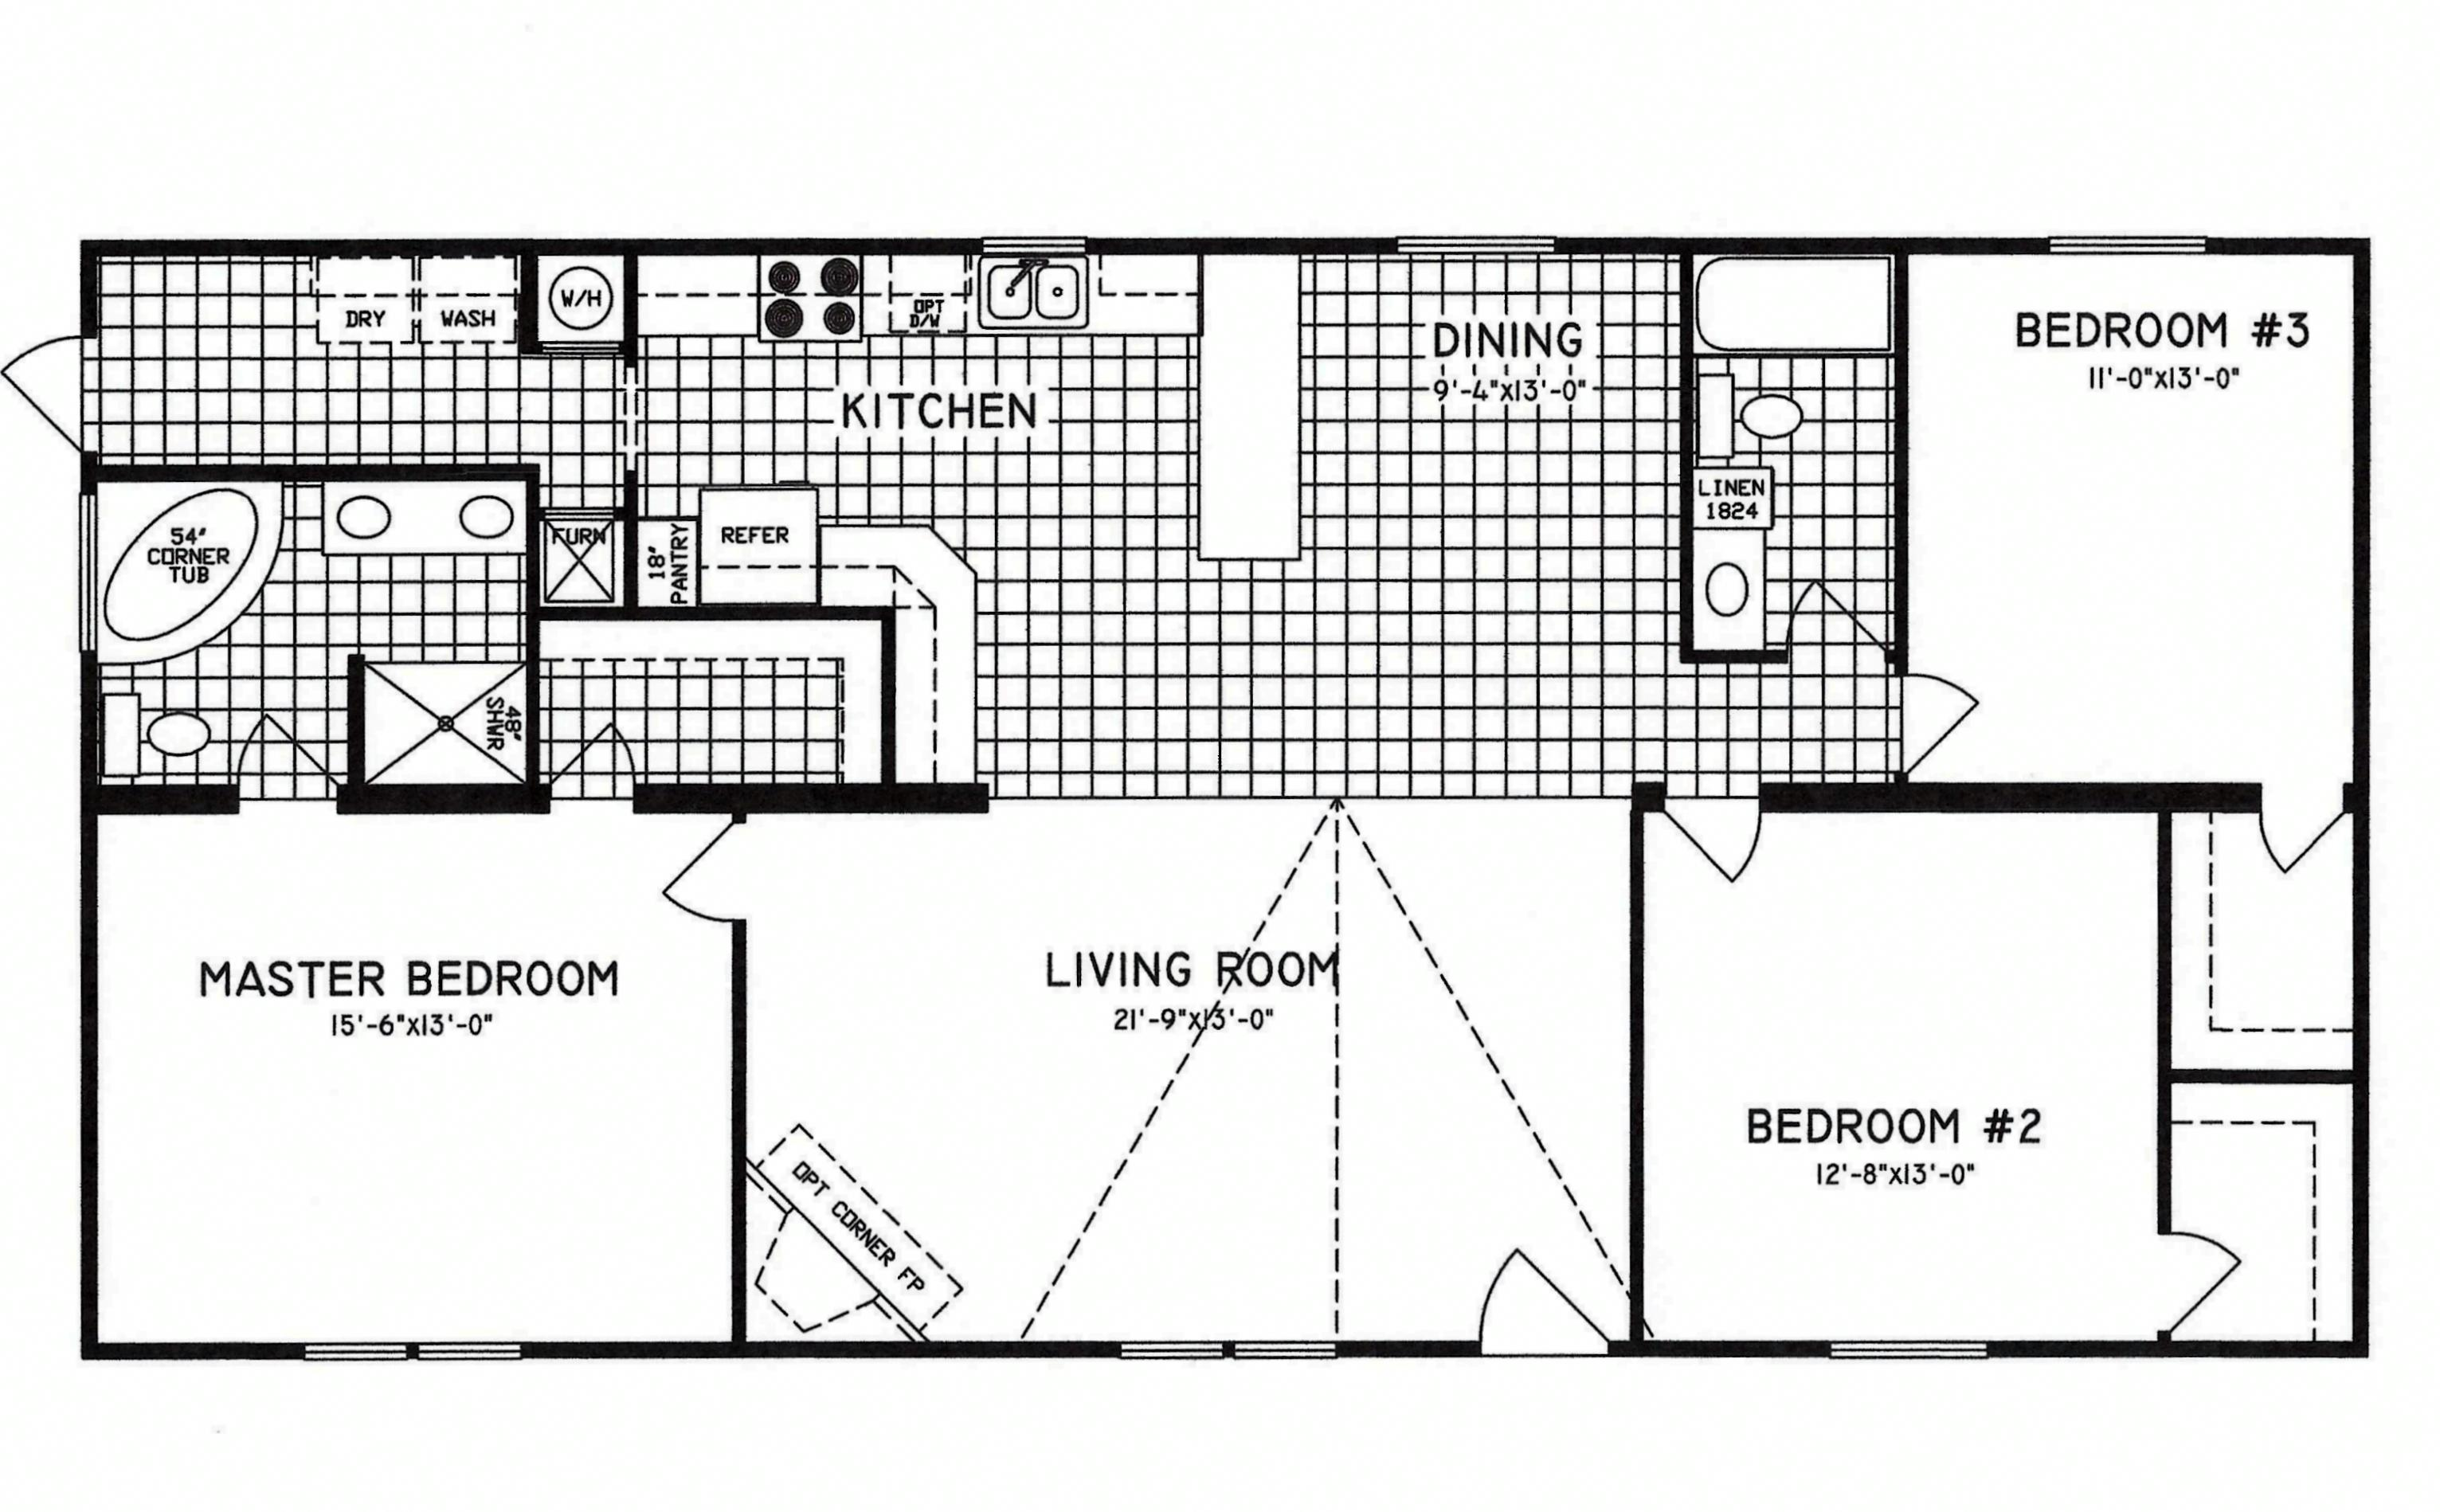 3 Bedroom Floor Plan C 9809 Hawks Homes Manufactured Modular Conway Little Rock Arkansas